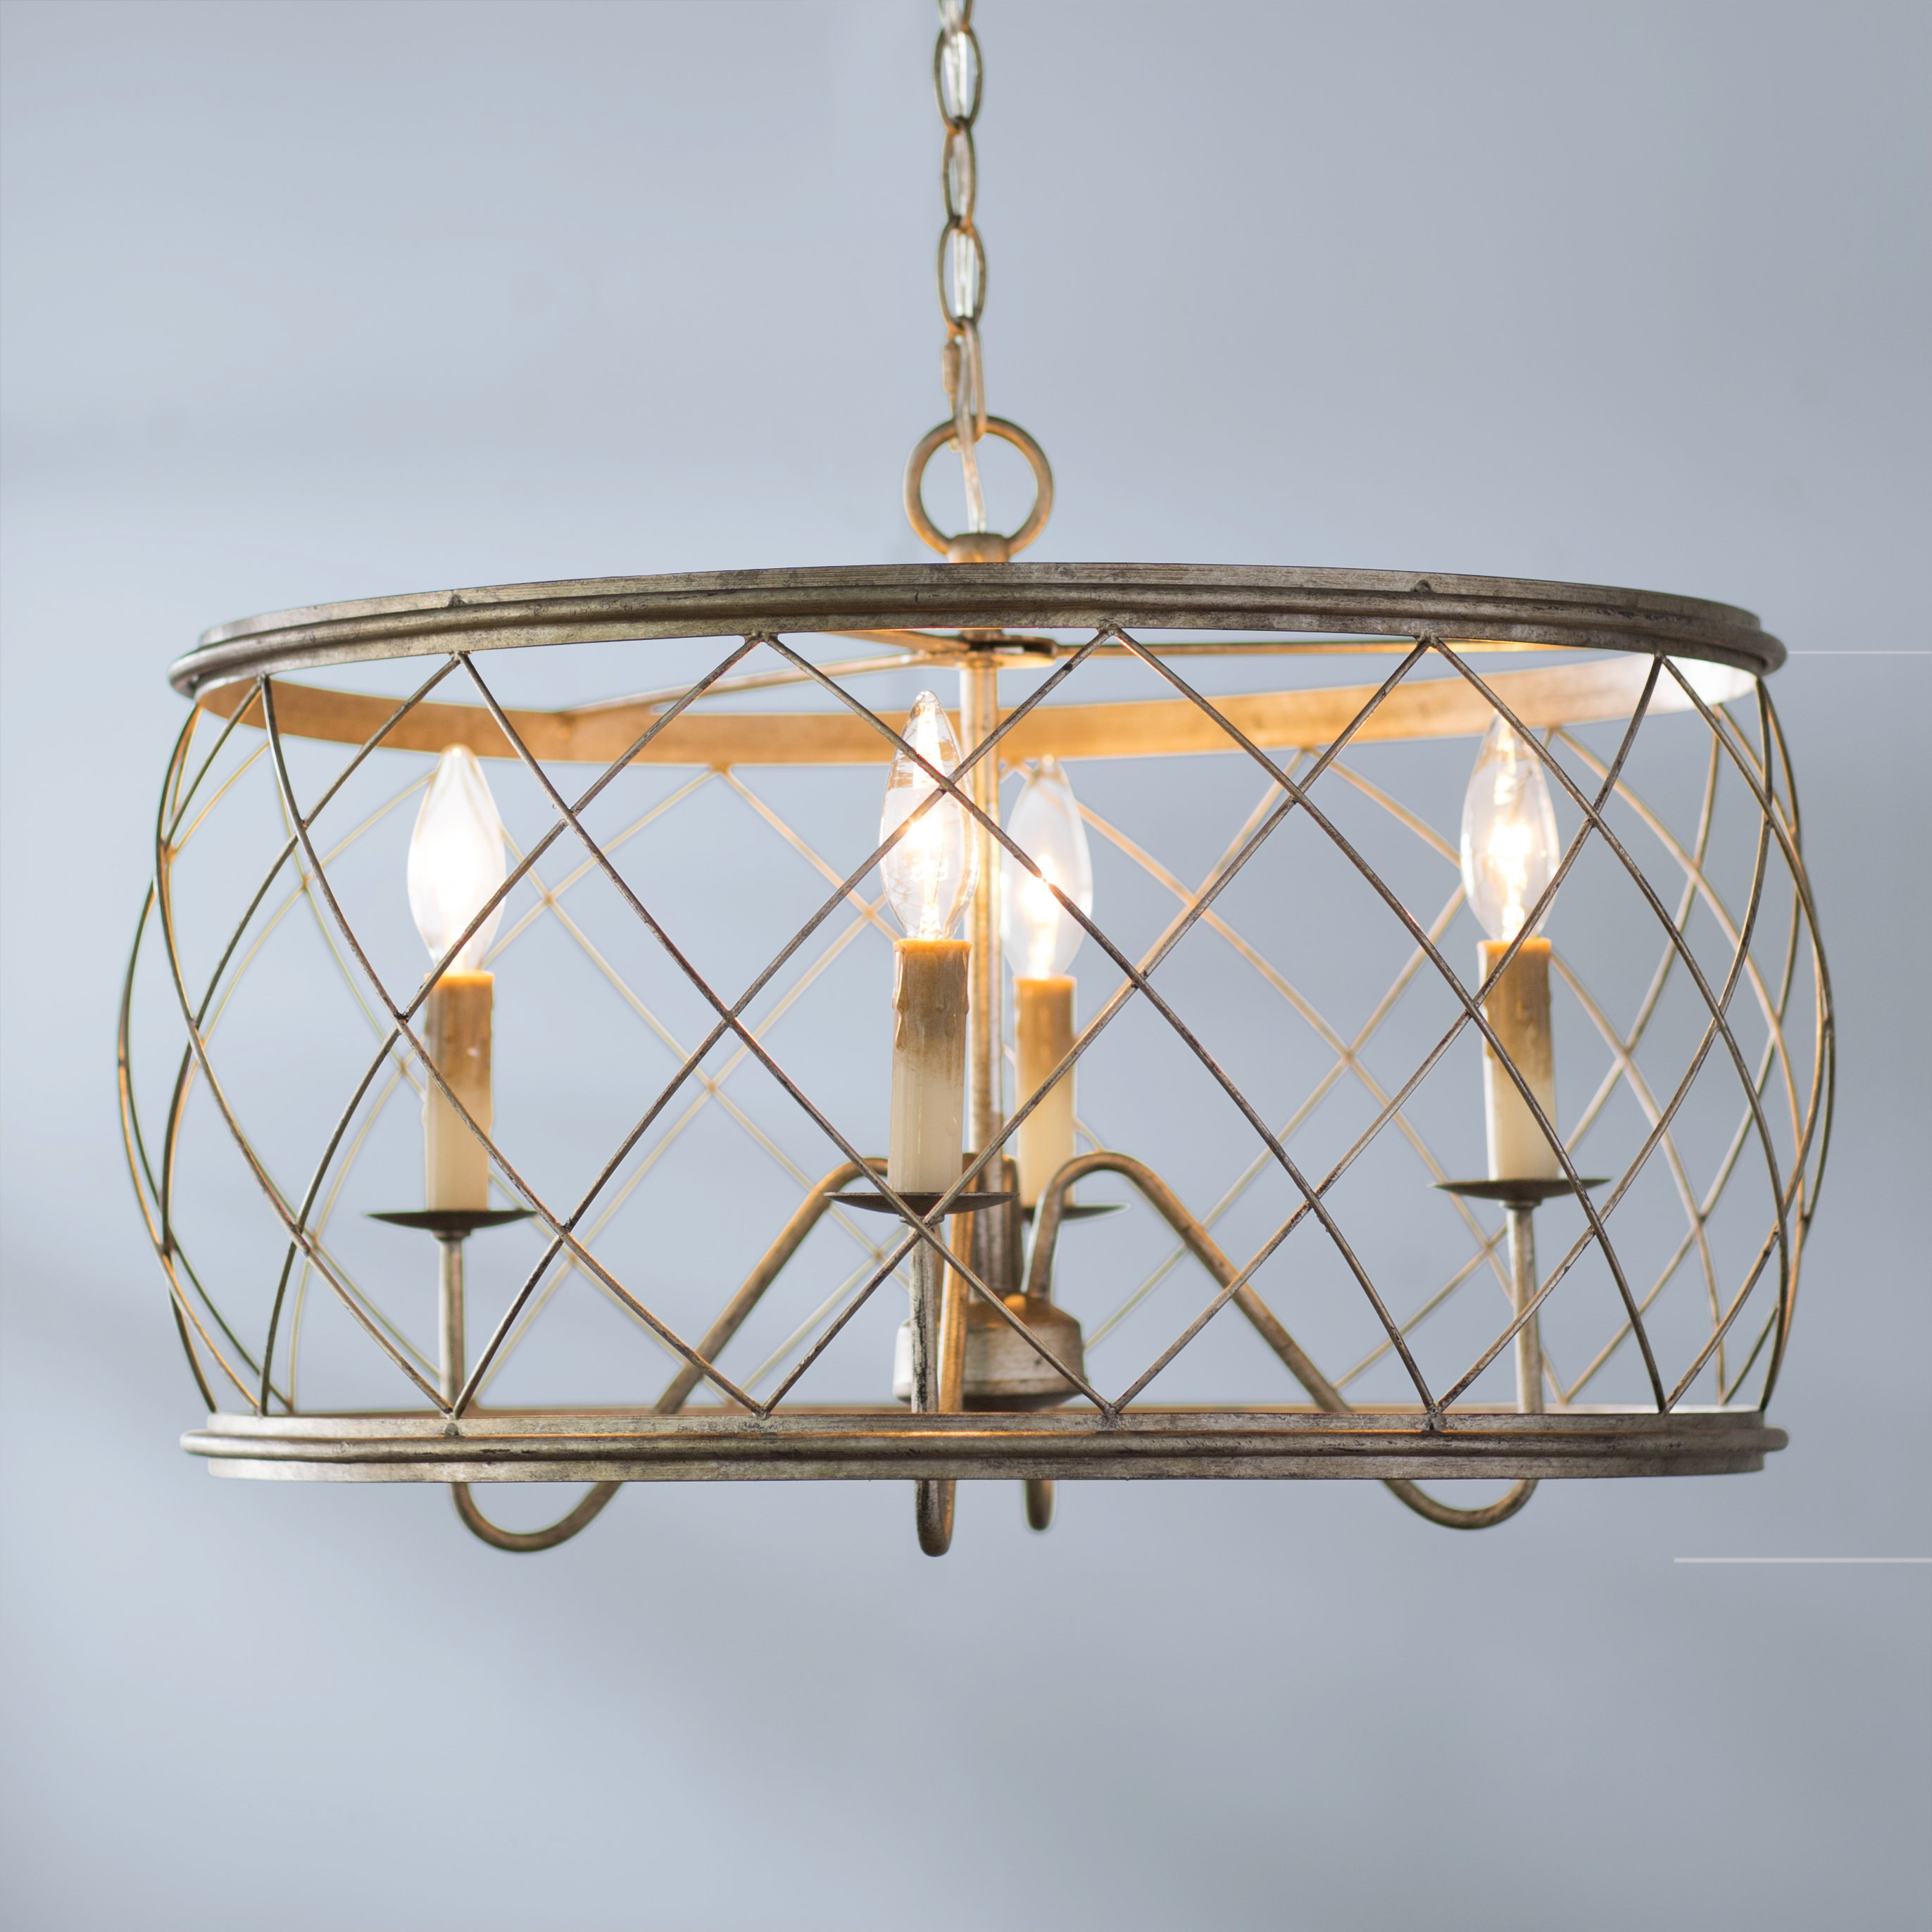 Well Liked Laurel Foundry Modern Farmhouse Ryne 4 Light Drum Pendant Inside Nisbet 4 Light Lantern Geometric Pendants (View 18 of 20)